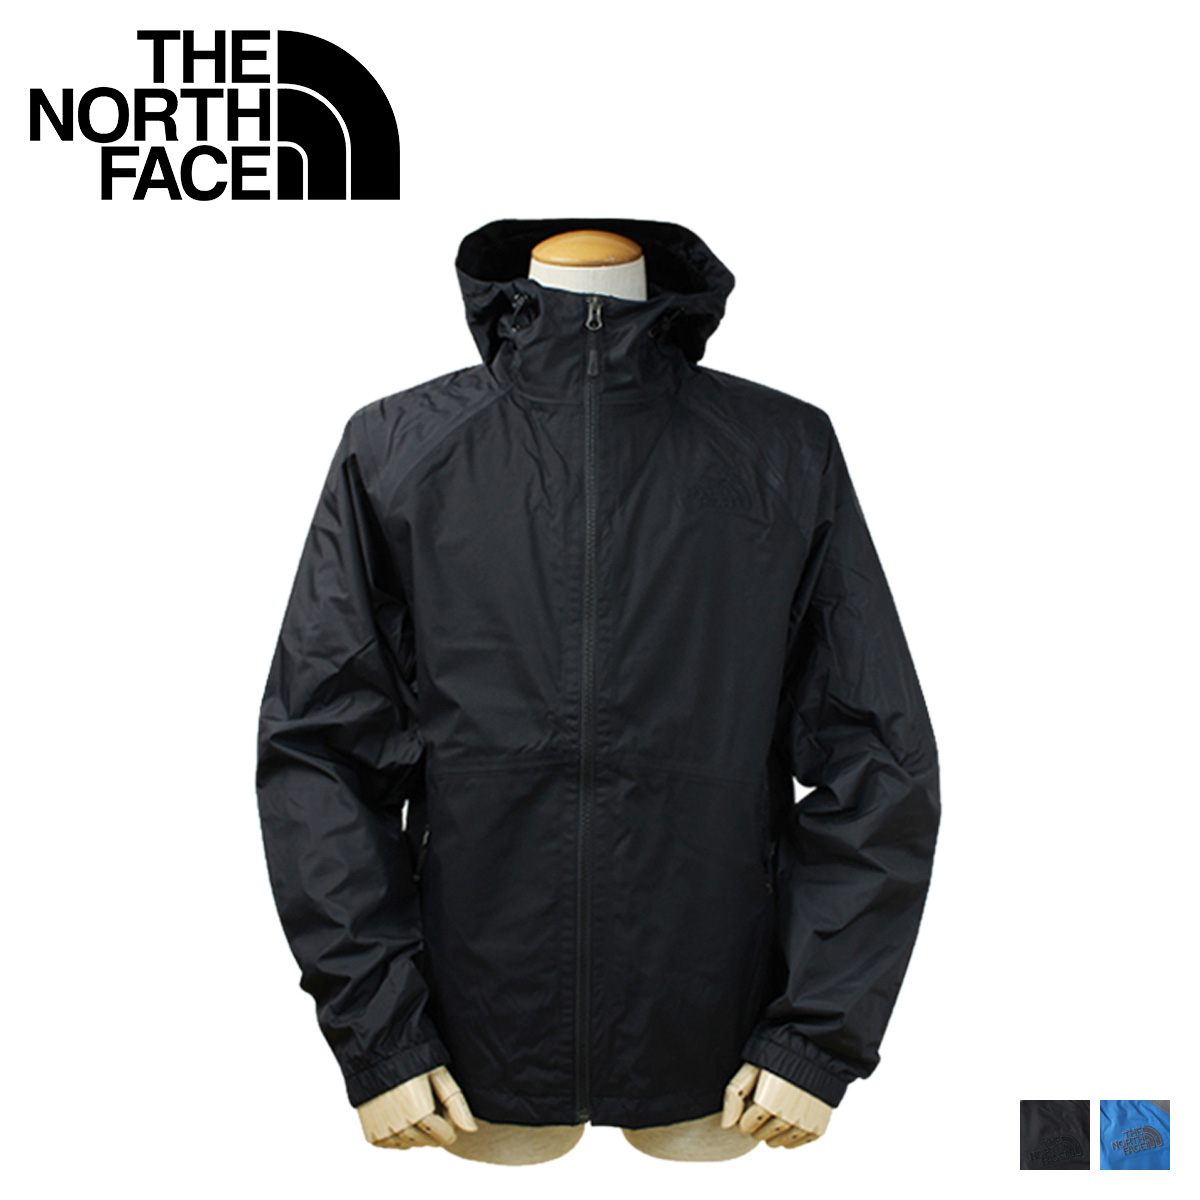 THE NORTH FACE   ☆ mens all about jackets ☆ MEN s ALL ABOUT JACKET STYLE   A7N8 92edcf30d